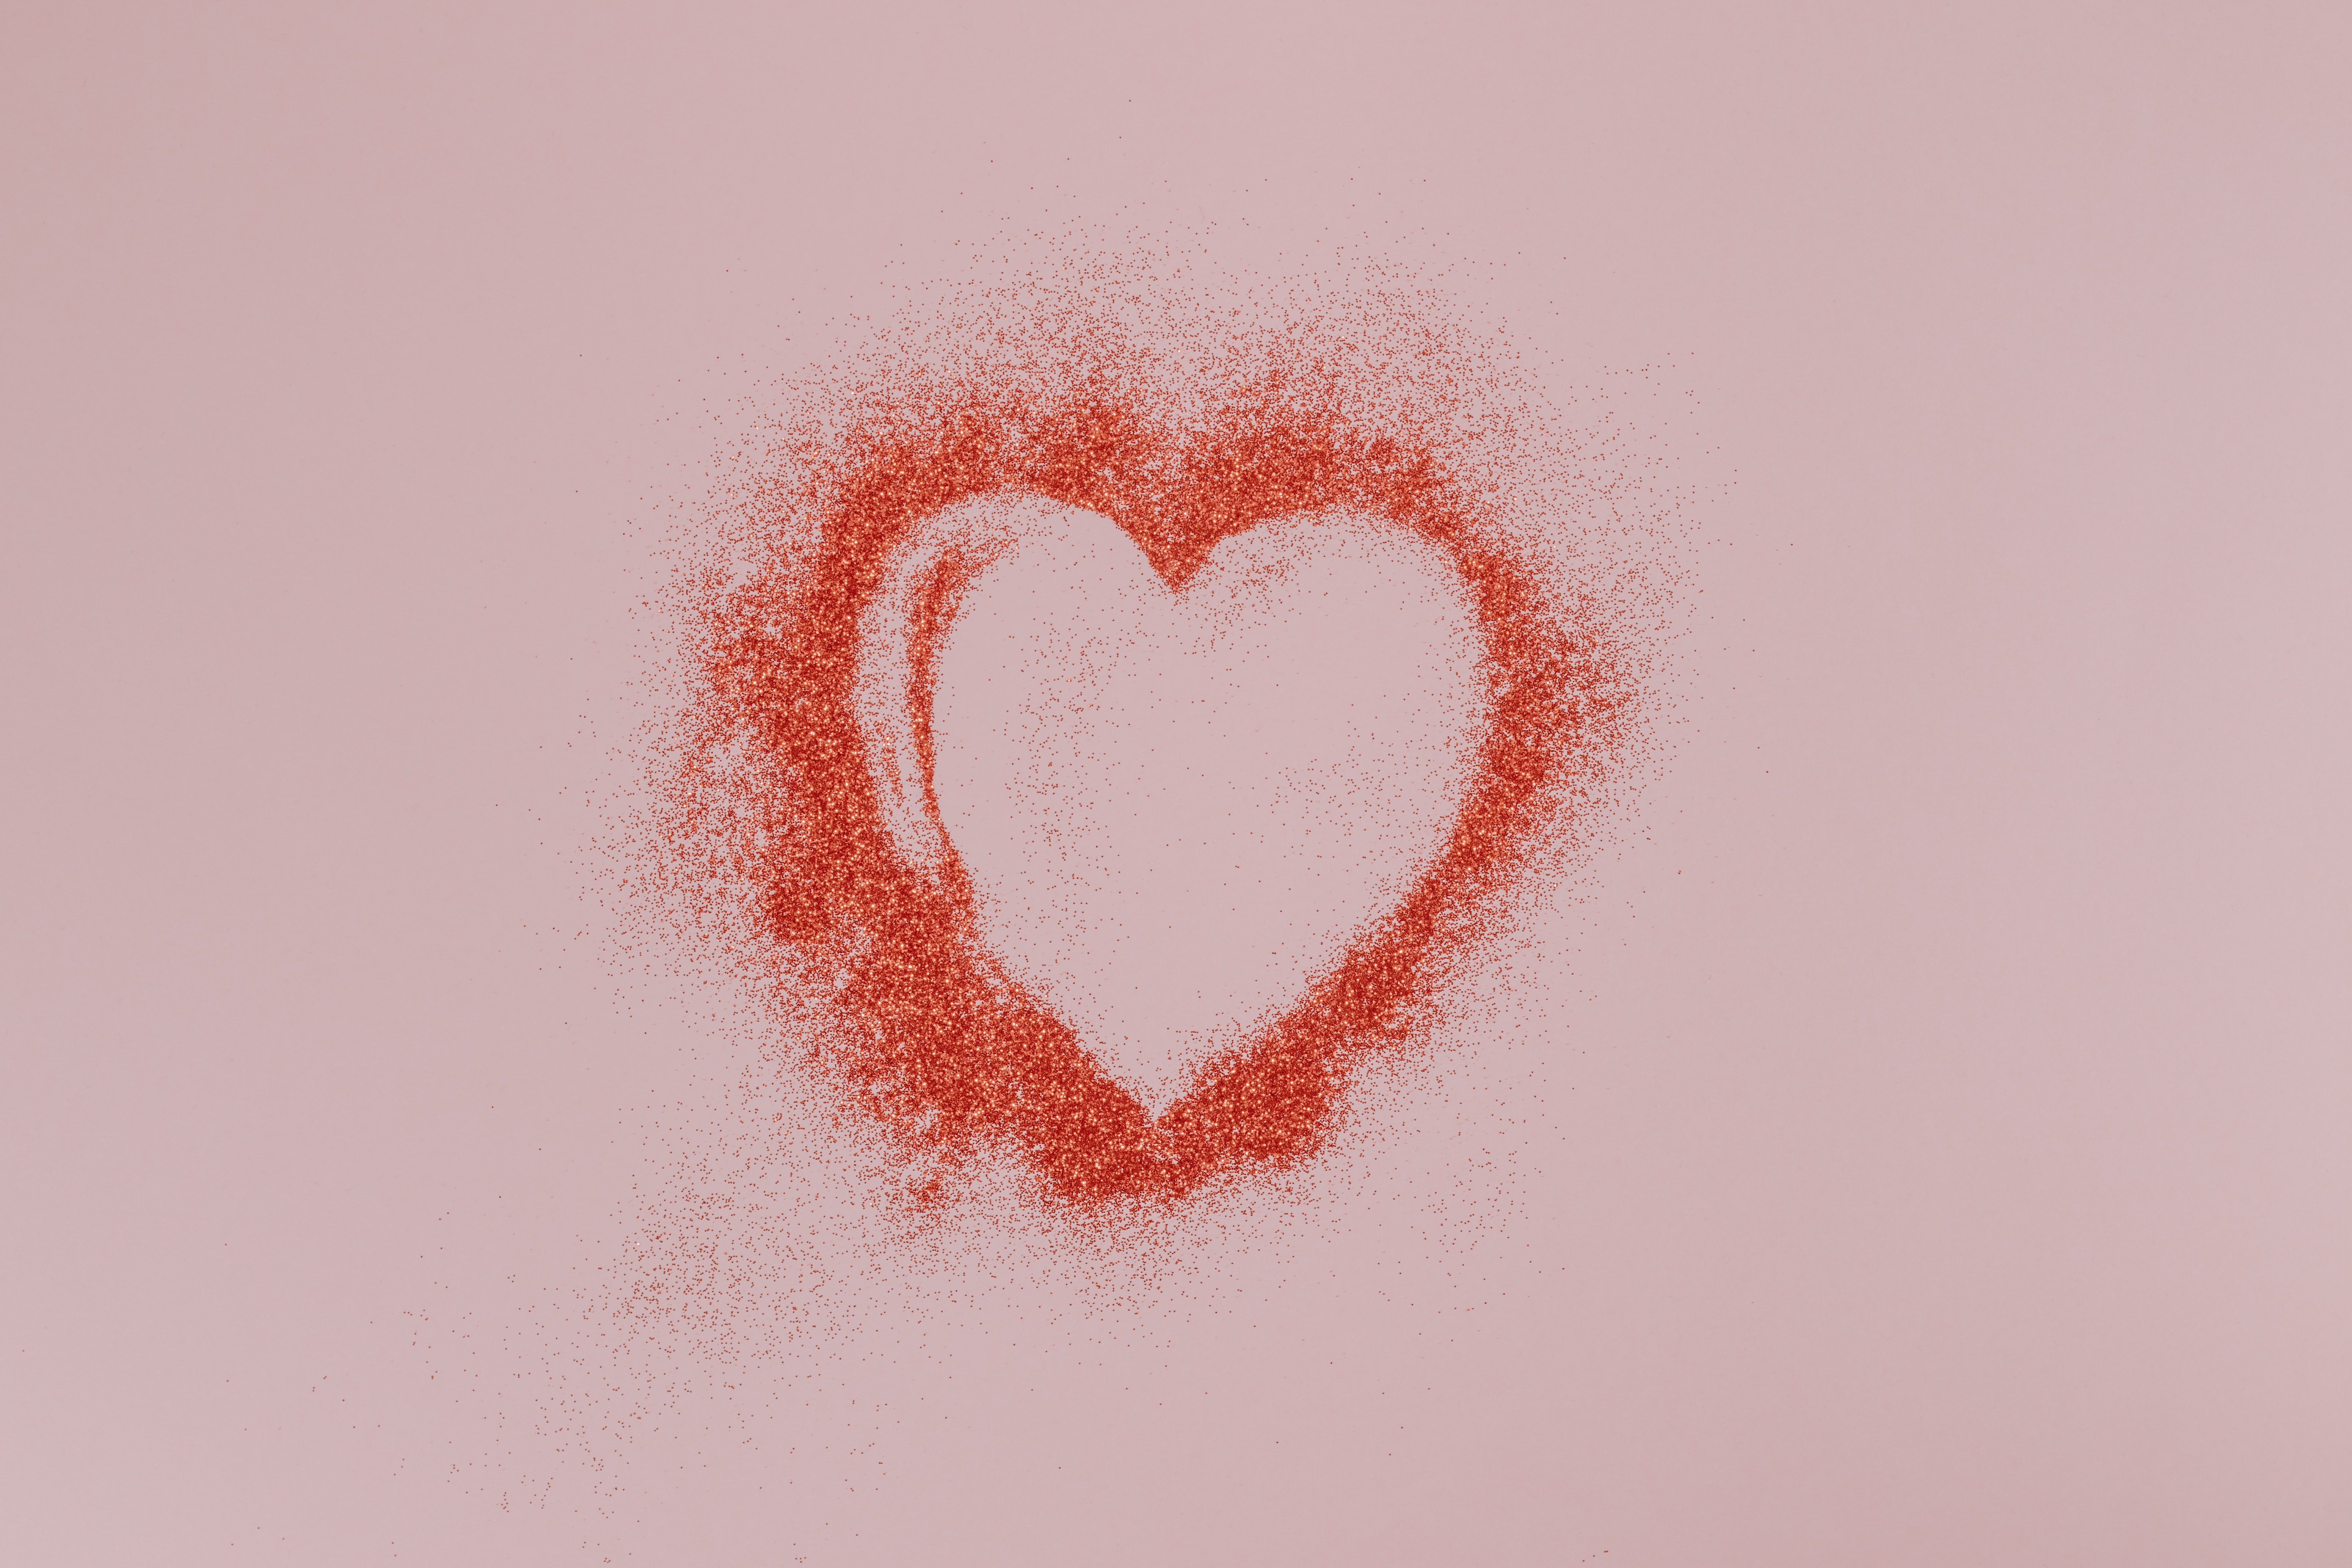 Love heart in red glitter on a pink background